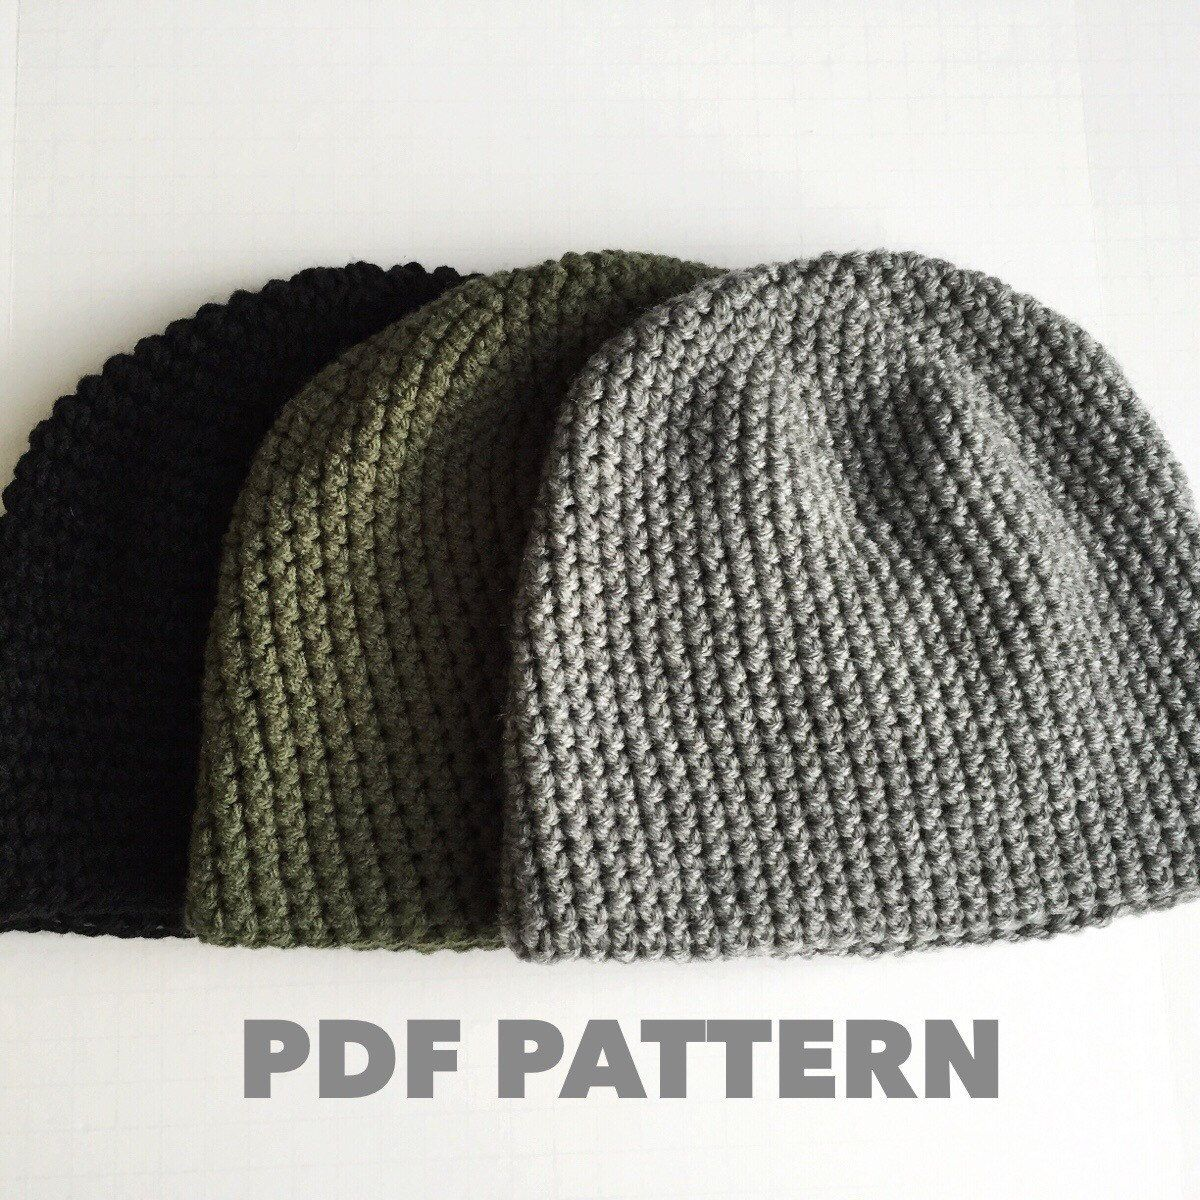 Pattern mens easy hat crochet beanie seamless simple basic classic pattern mens easy hat crochet beanie seamless simple basic classic crochet hat bankloansurffo Images